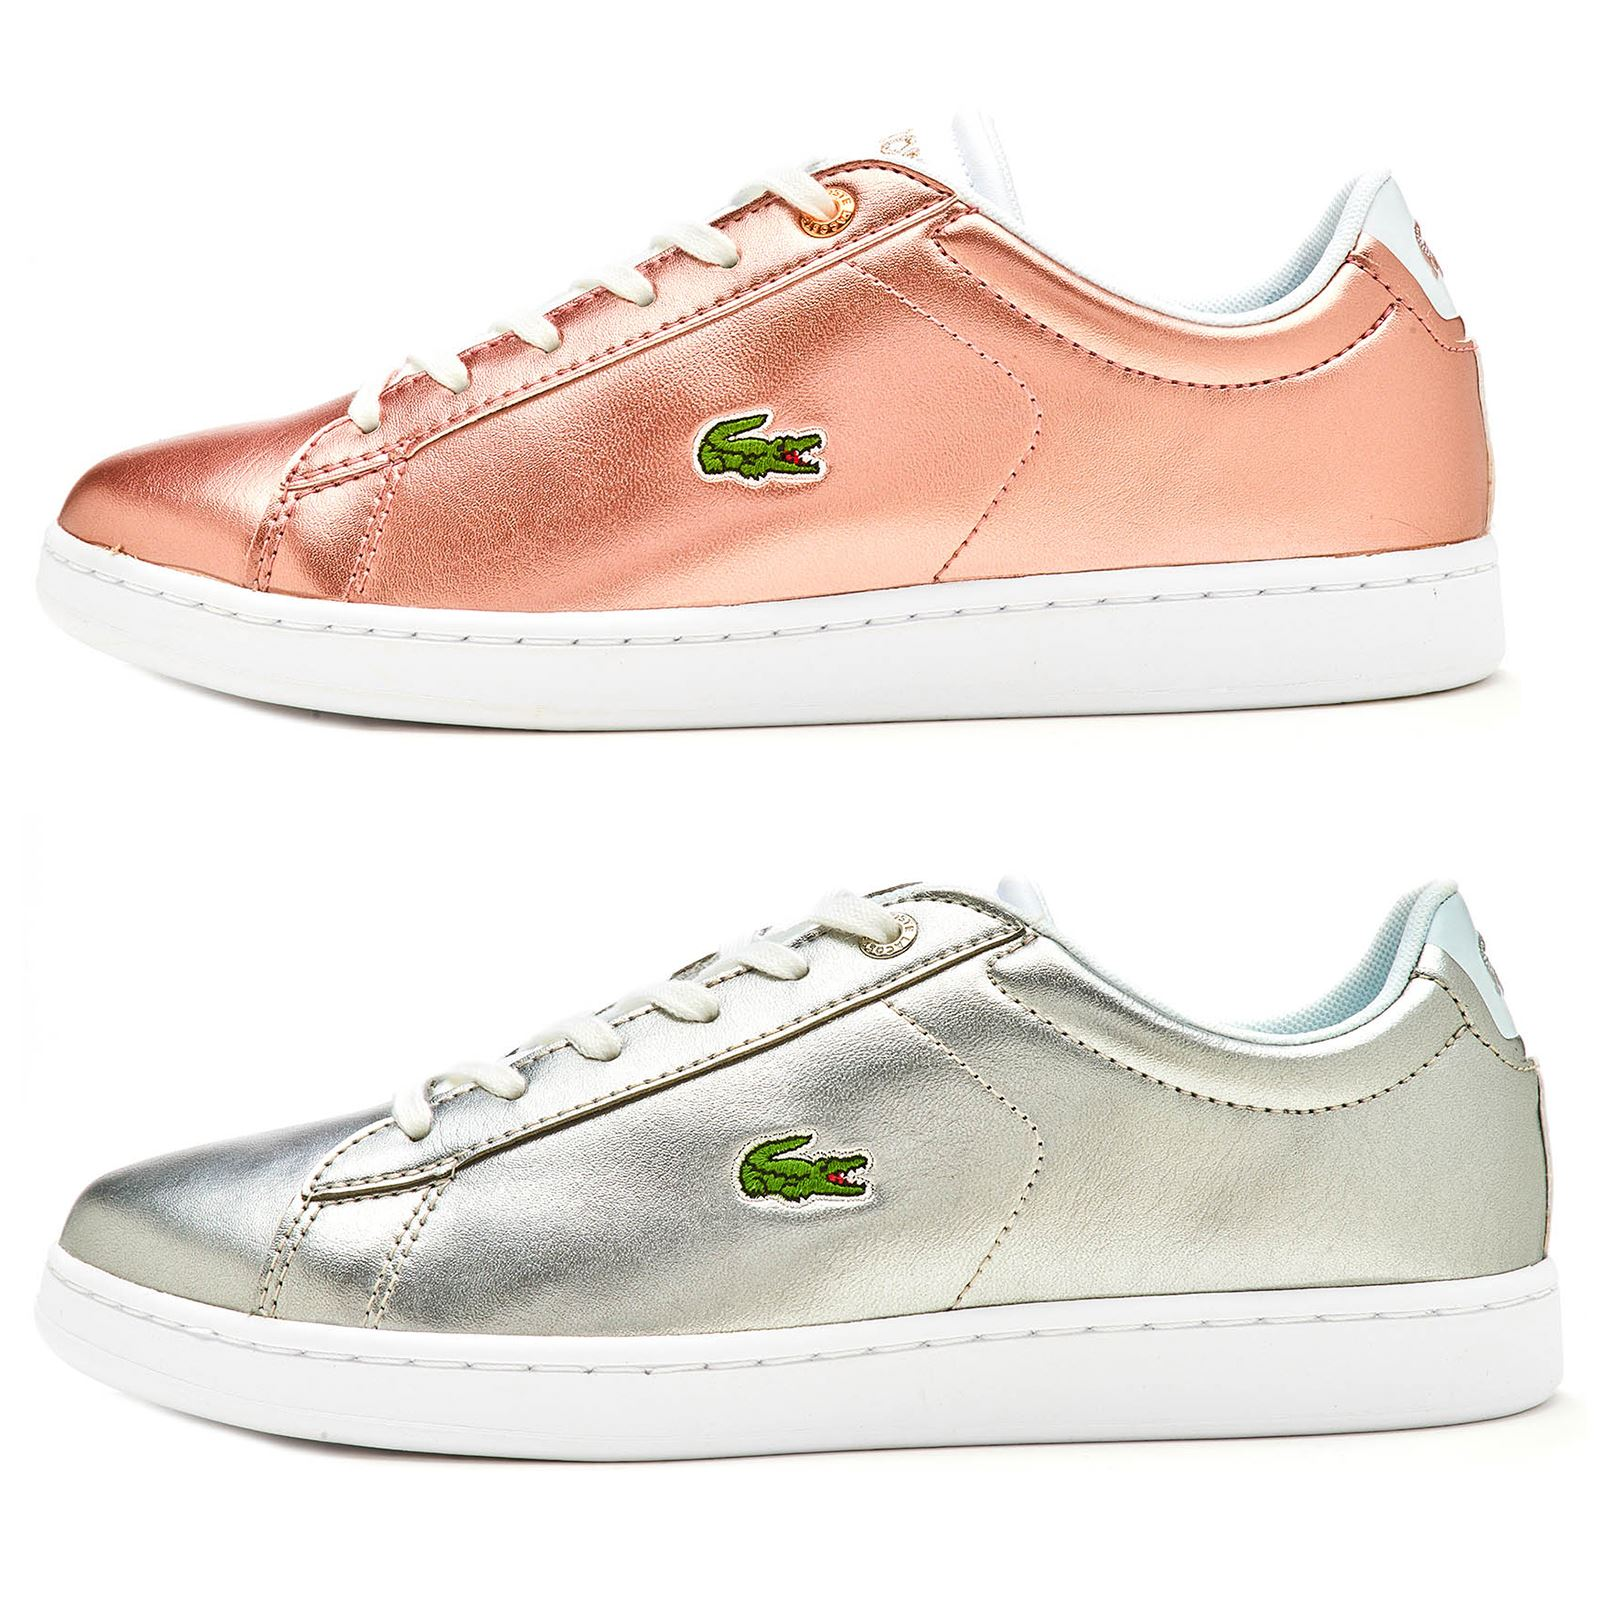 4cc62d3f3164 Lacoste Carnaby Evo 318 2 SPJ GS Trainers in Metallic Pink   Silver  736SPJ0002